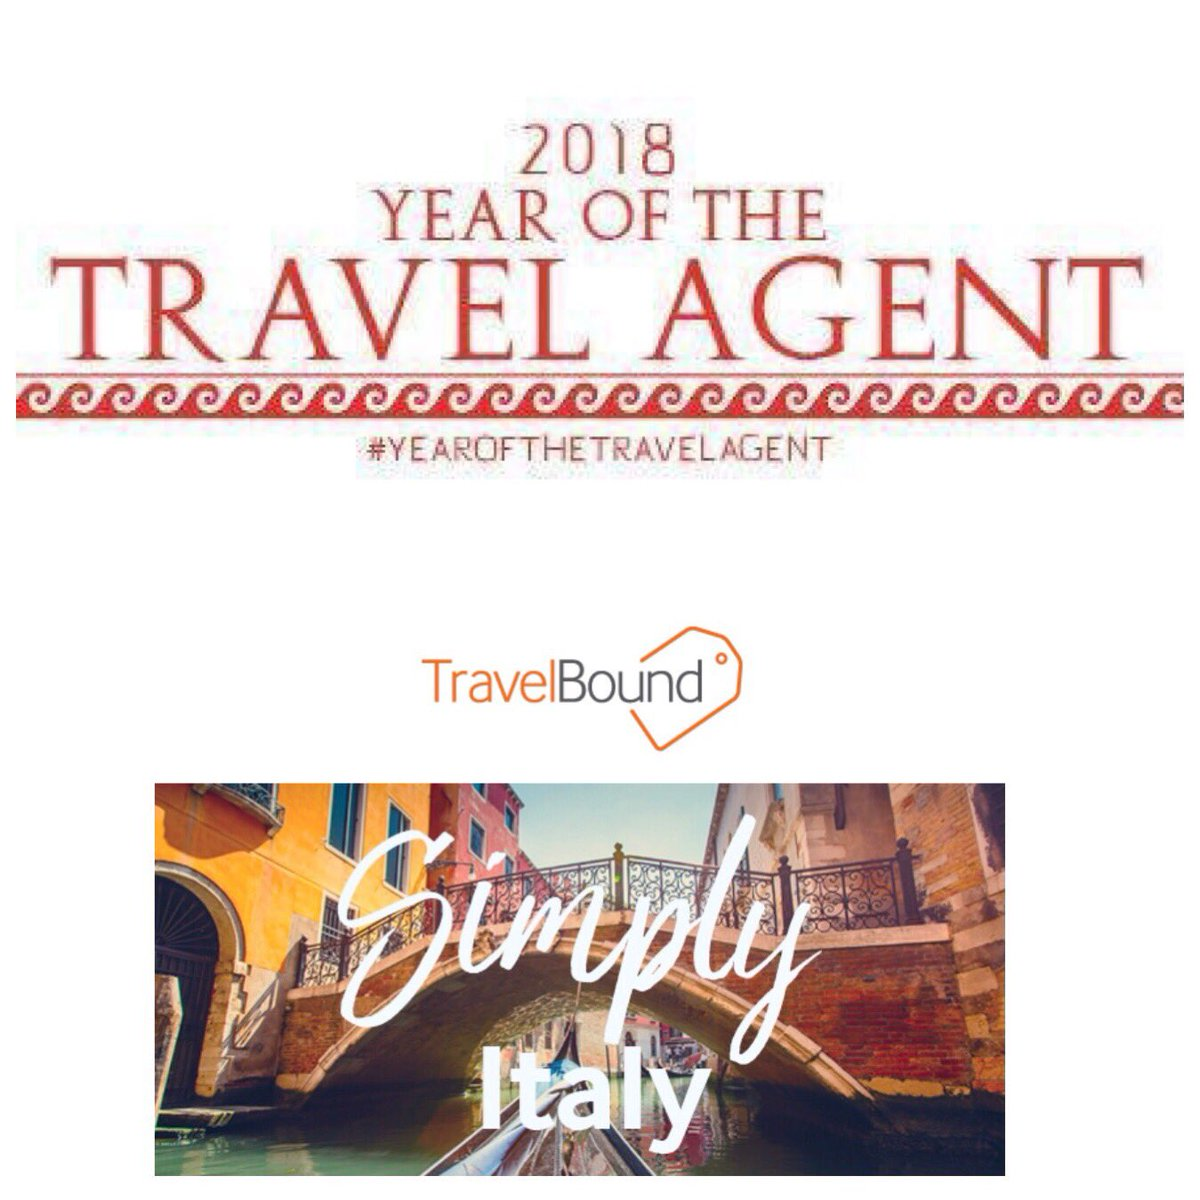 @TravelBound_GTA is ready for  #EDGEwithTLN. With the year of the Travel Agent - as an exclusive Travel agent only company we value your support. @TravelLeaders @nexionllc @Protravelint @TzellTravel @ALTOUR https://t.co/zWPXtgziIE